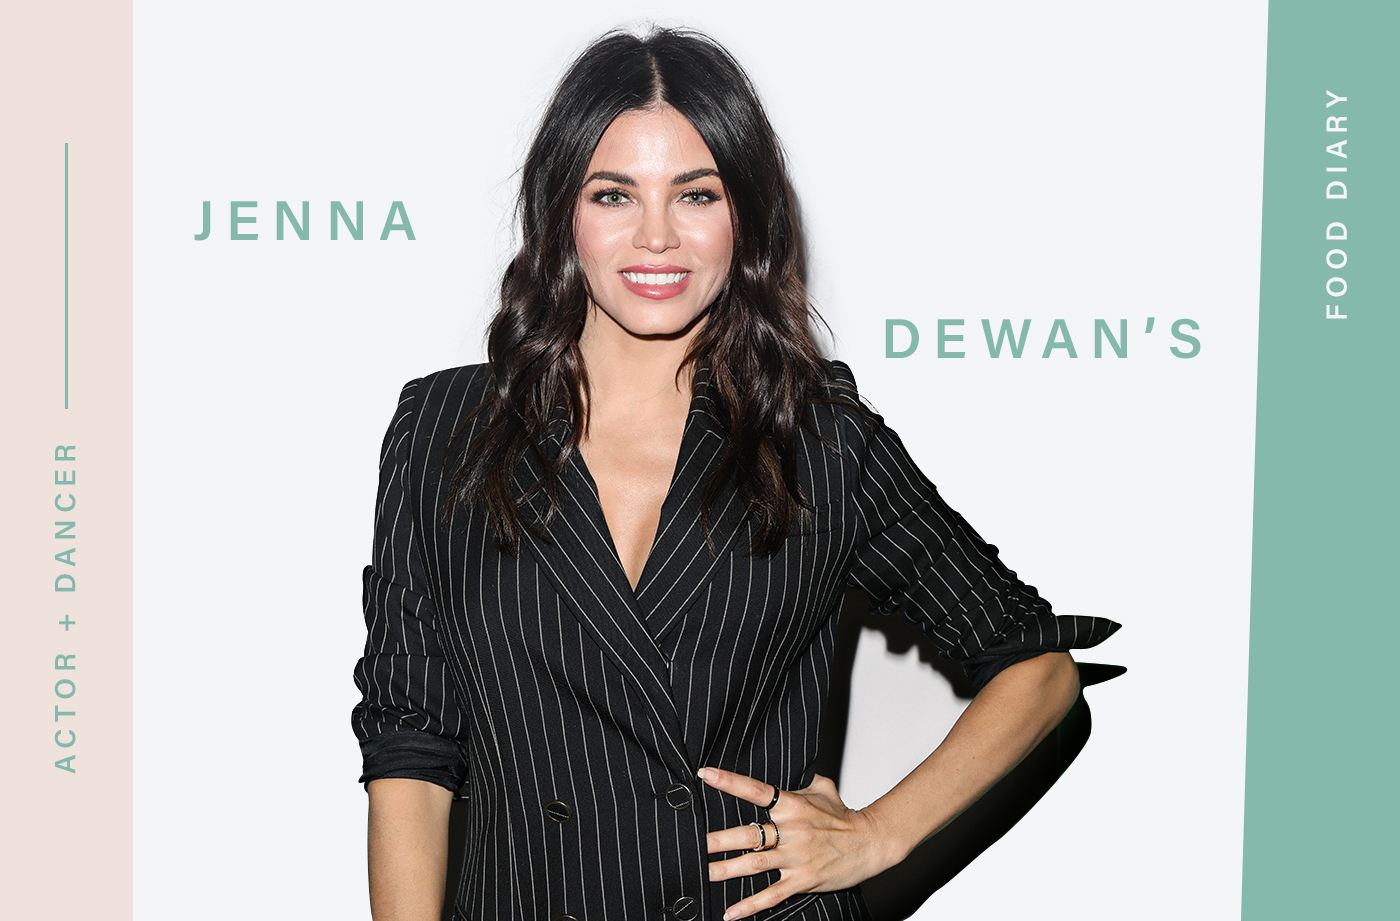 Thumbnail for Jenna Dewan's delicious go-to meals make me want to step up my cooking game